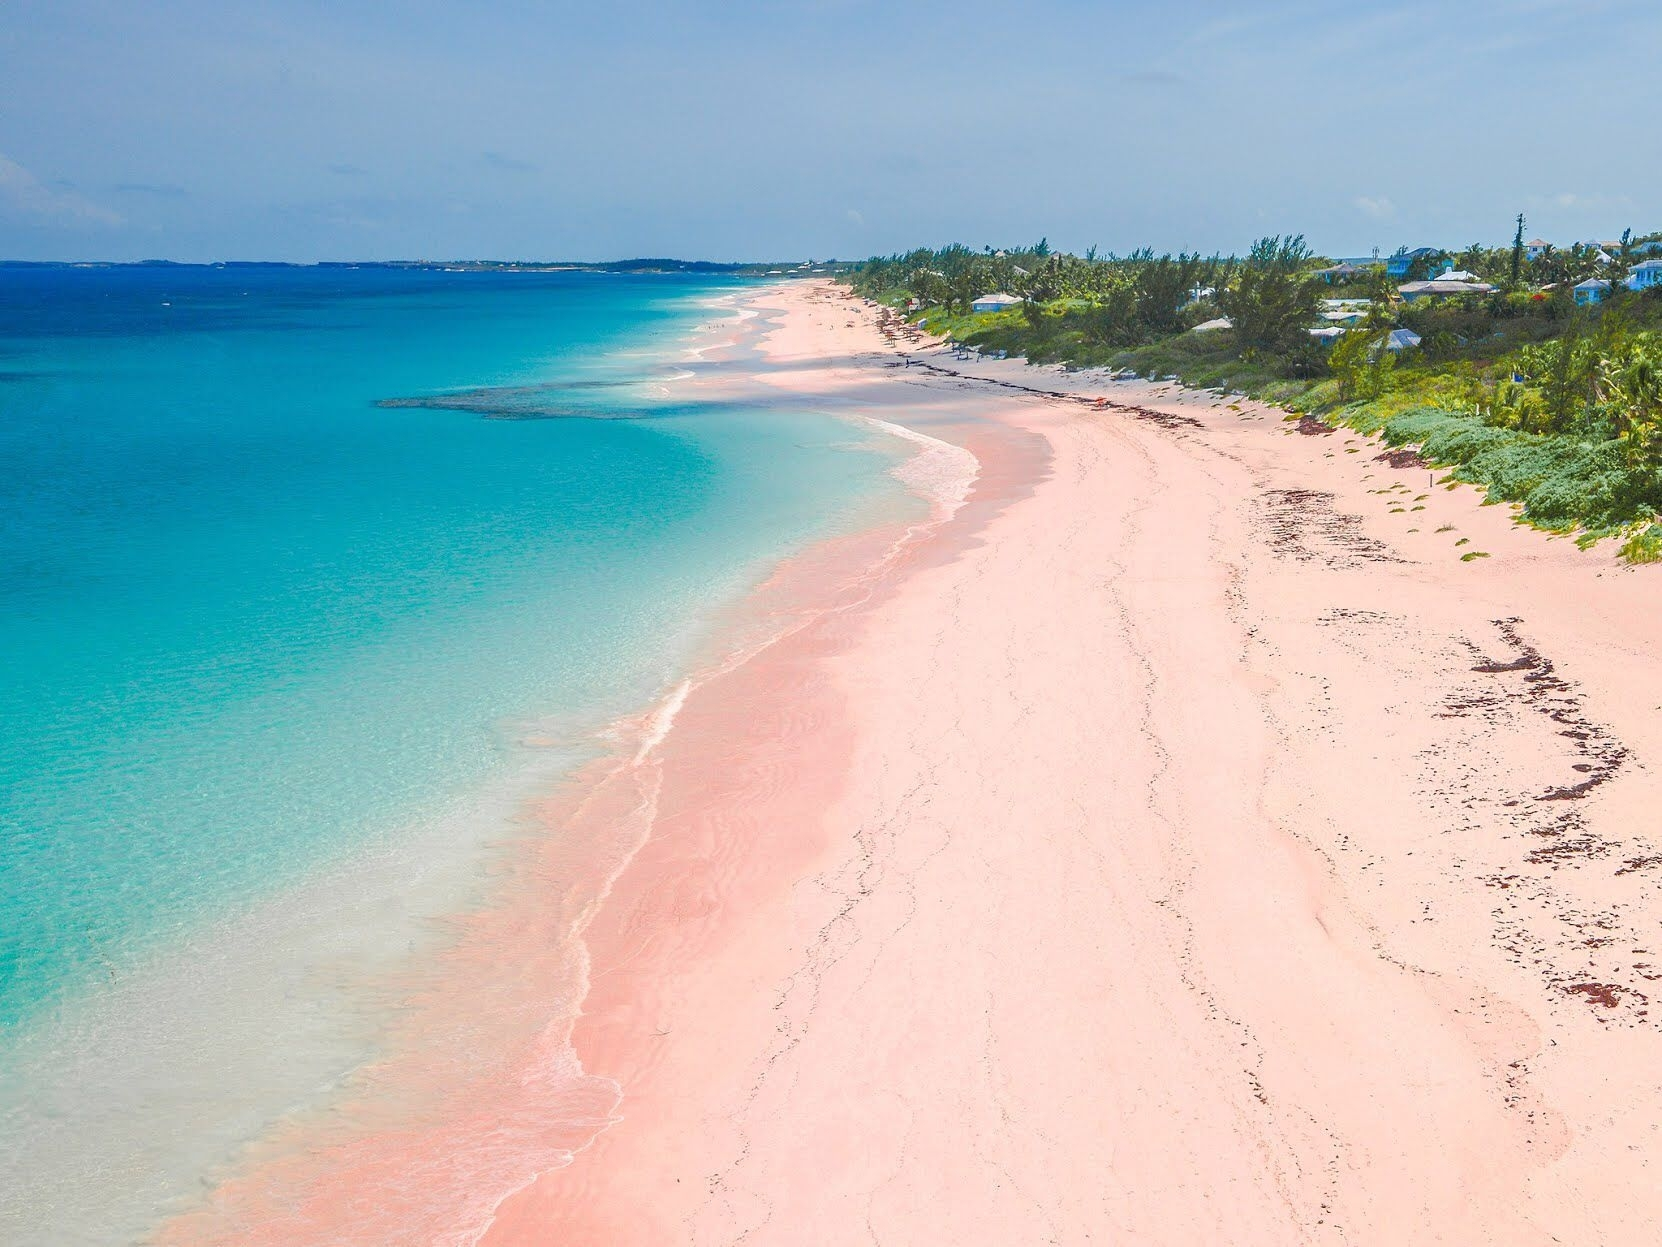 Go To Pink Sands Beach In Harbour Island, Bahamas | Bucket within Travel To Pink Sands Bahamas